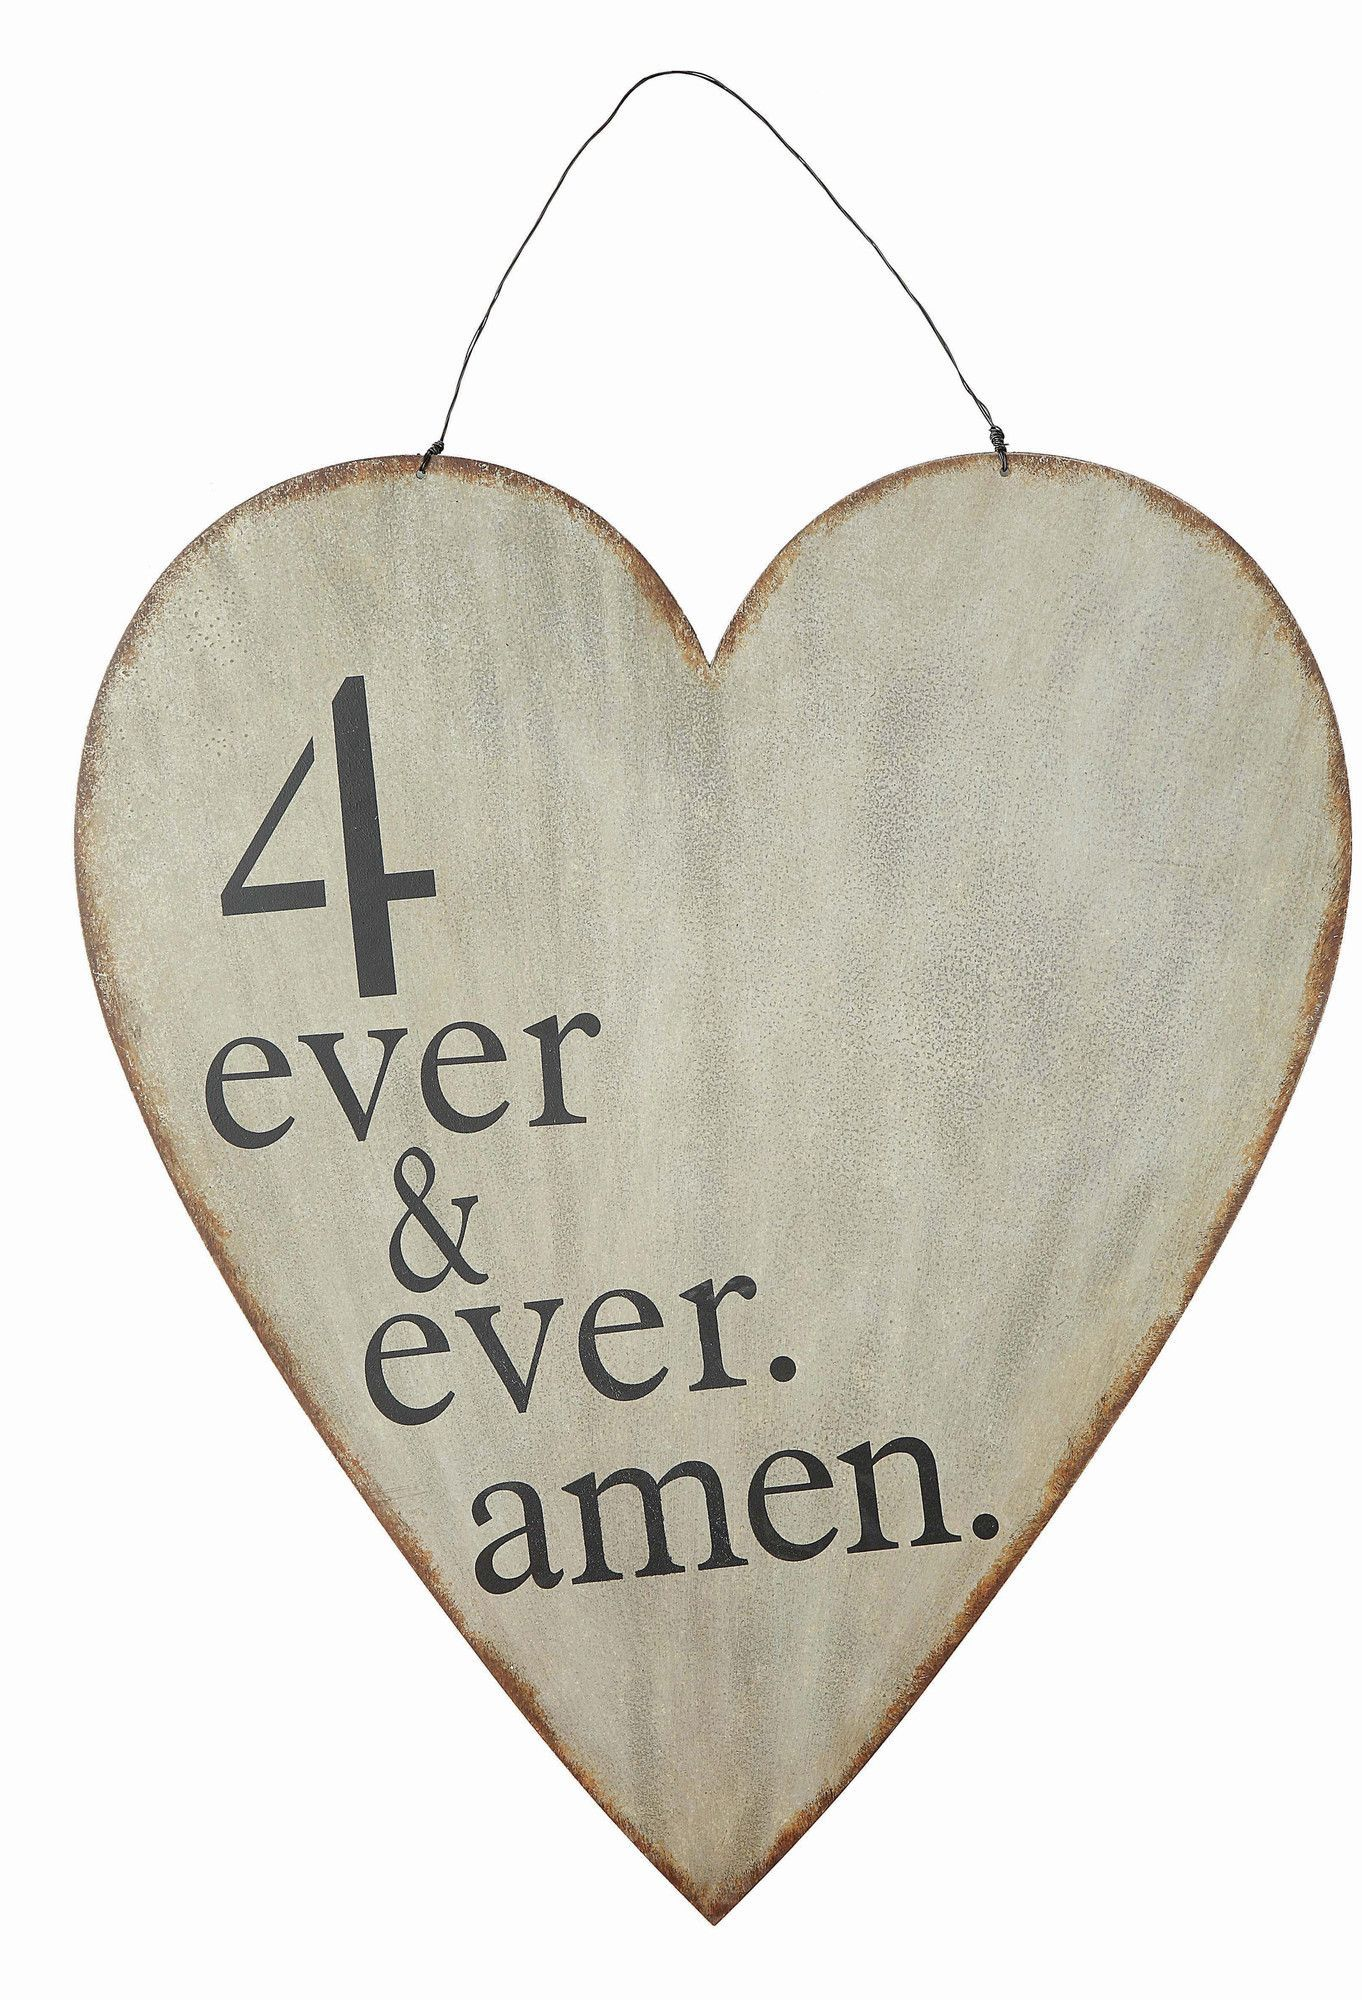 Creative coop cottage ever u ever amen heart wall decor u reviews